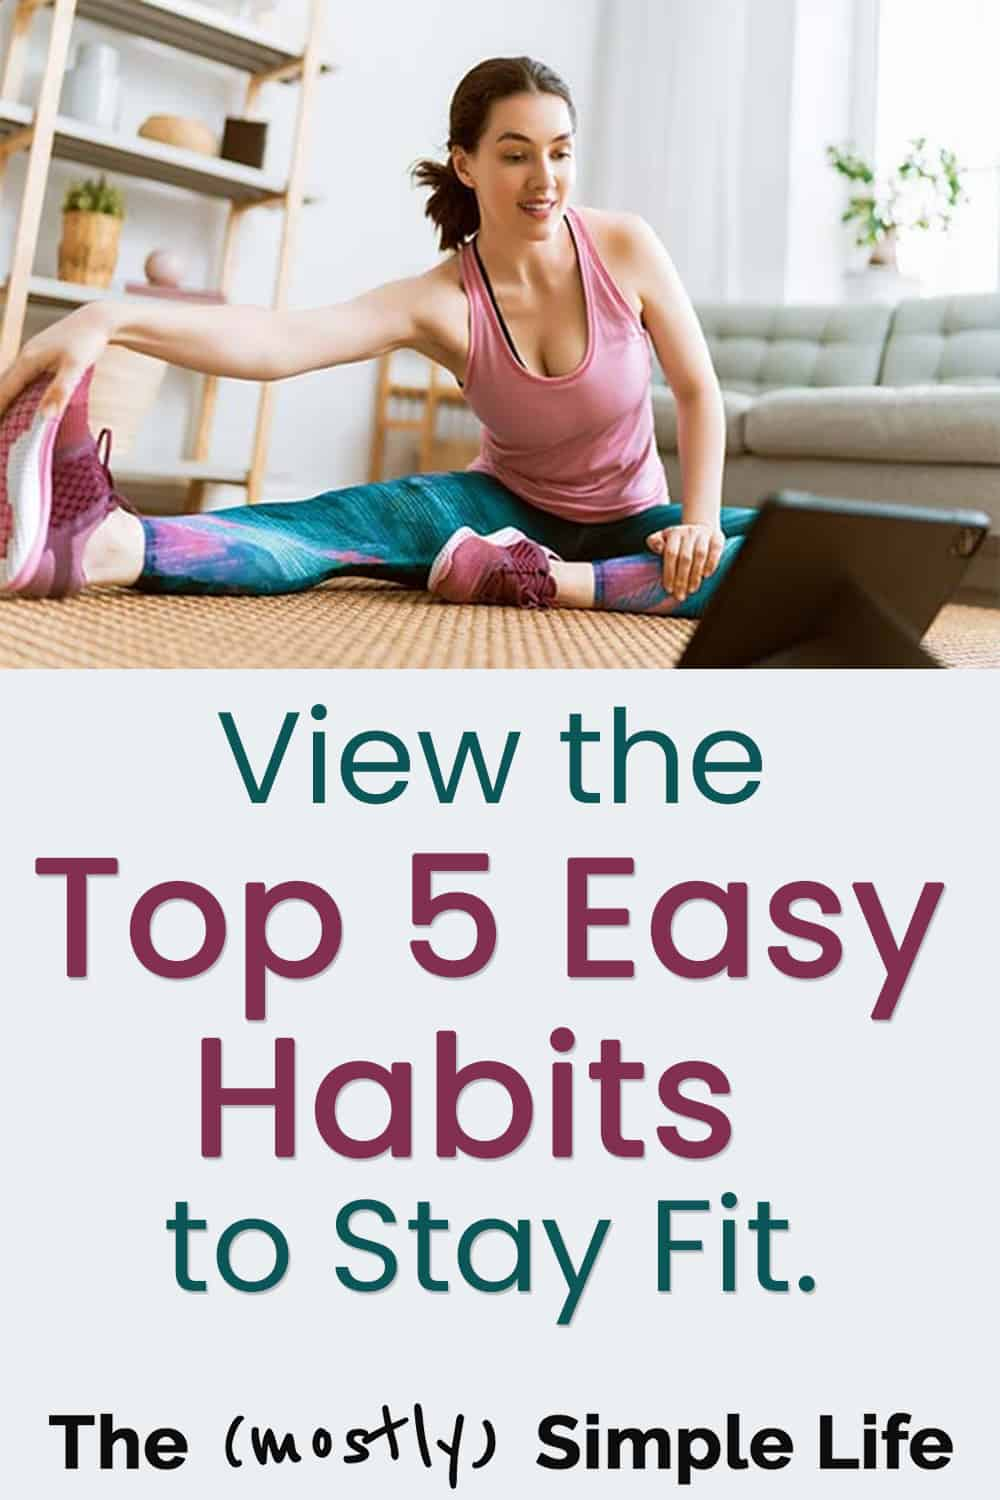 The 5 Easiest Habits to Keep a Physically Active Lifestyle ... and Stay Fit.